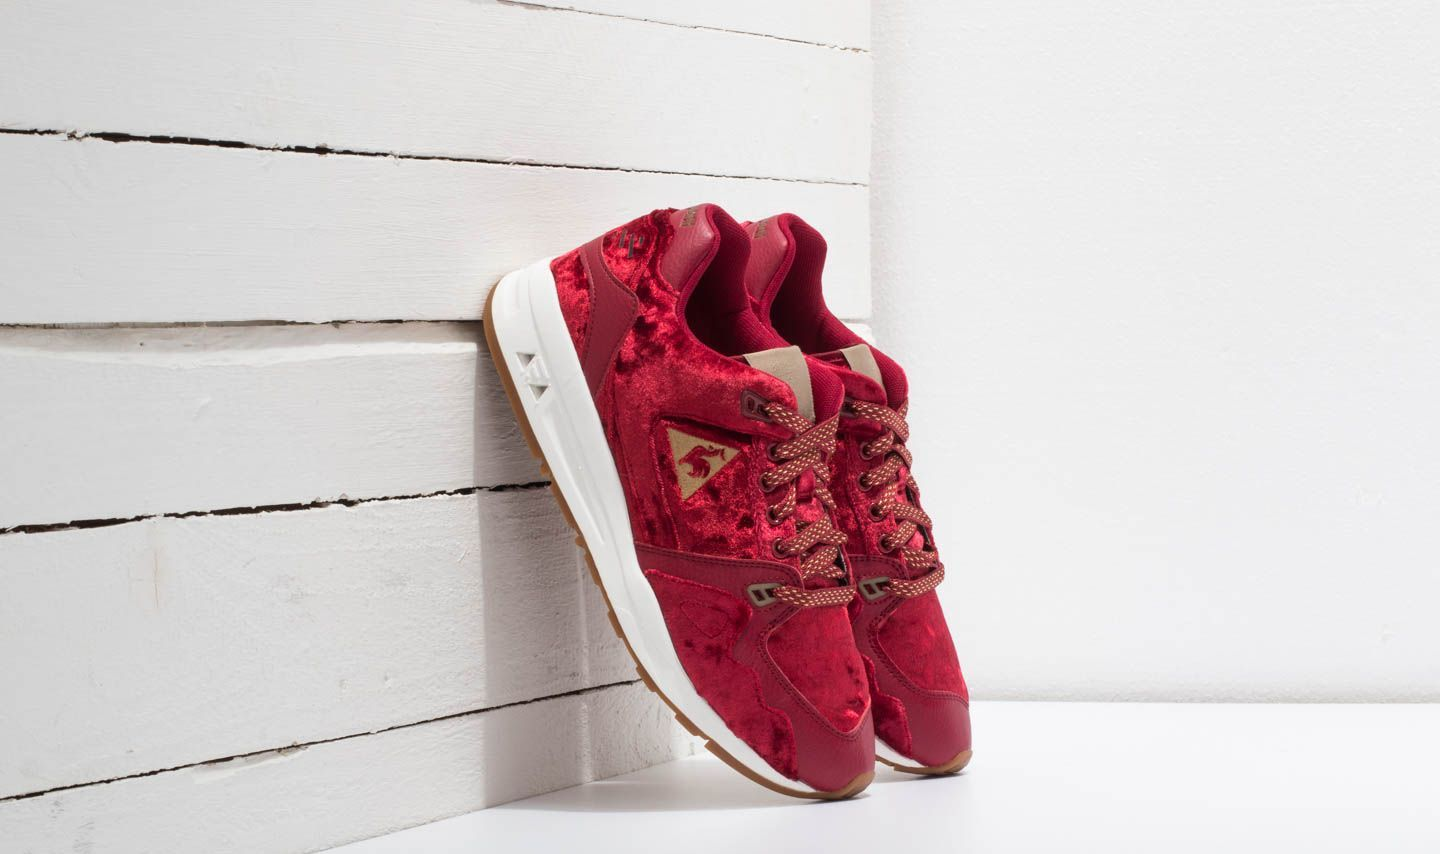 le coq sportif R1000 Velvet Rio Red/ Old Brass